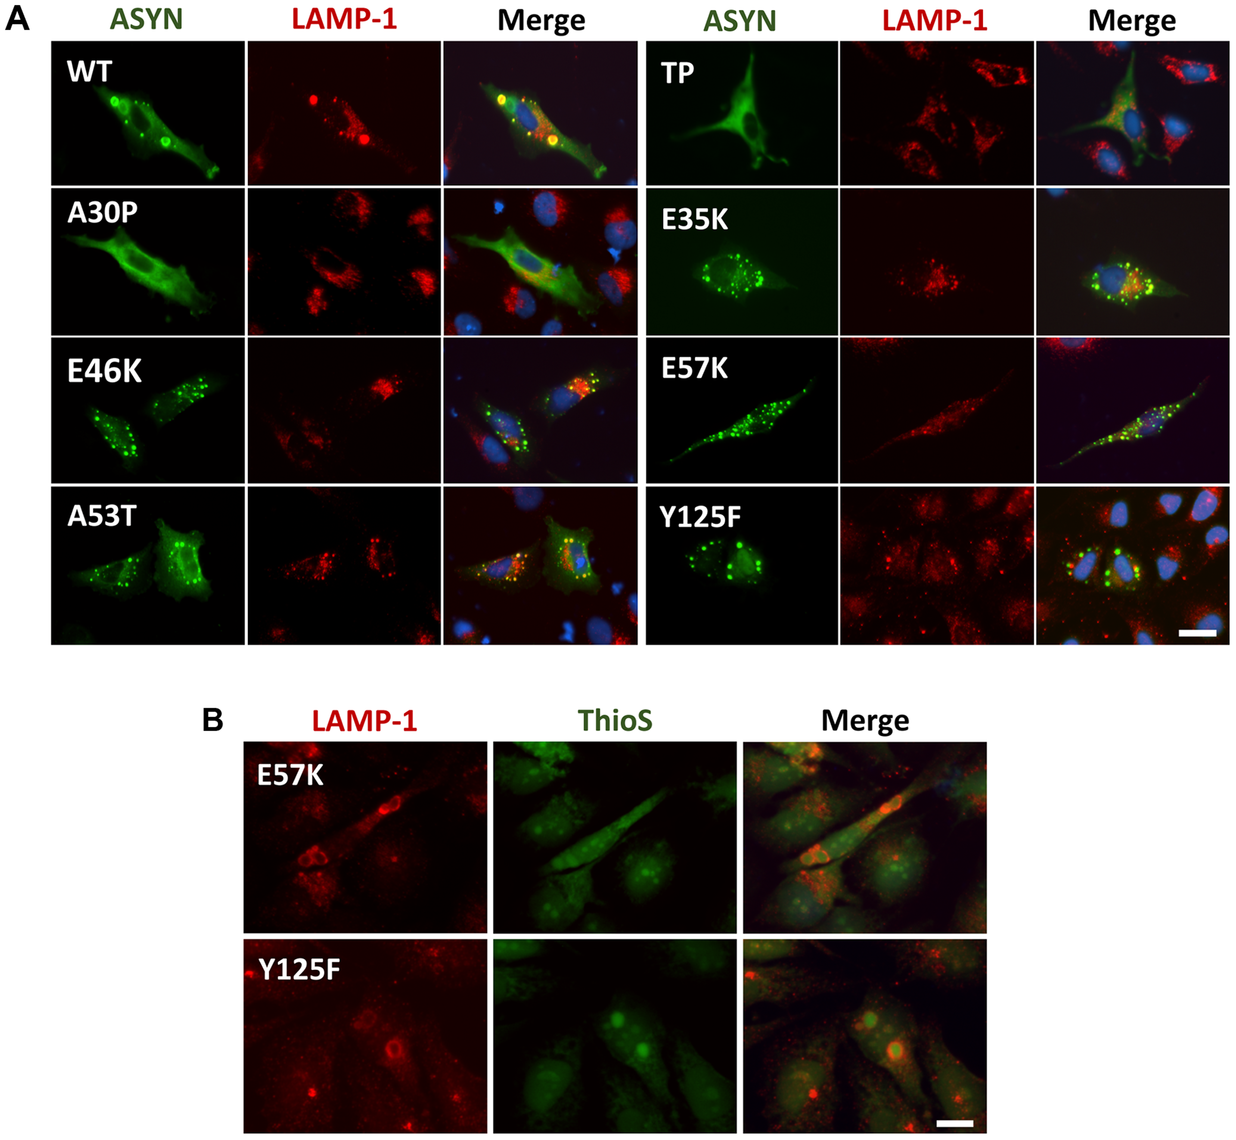 ASYN partially co-localizes with endosomes/lysosomes.